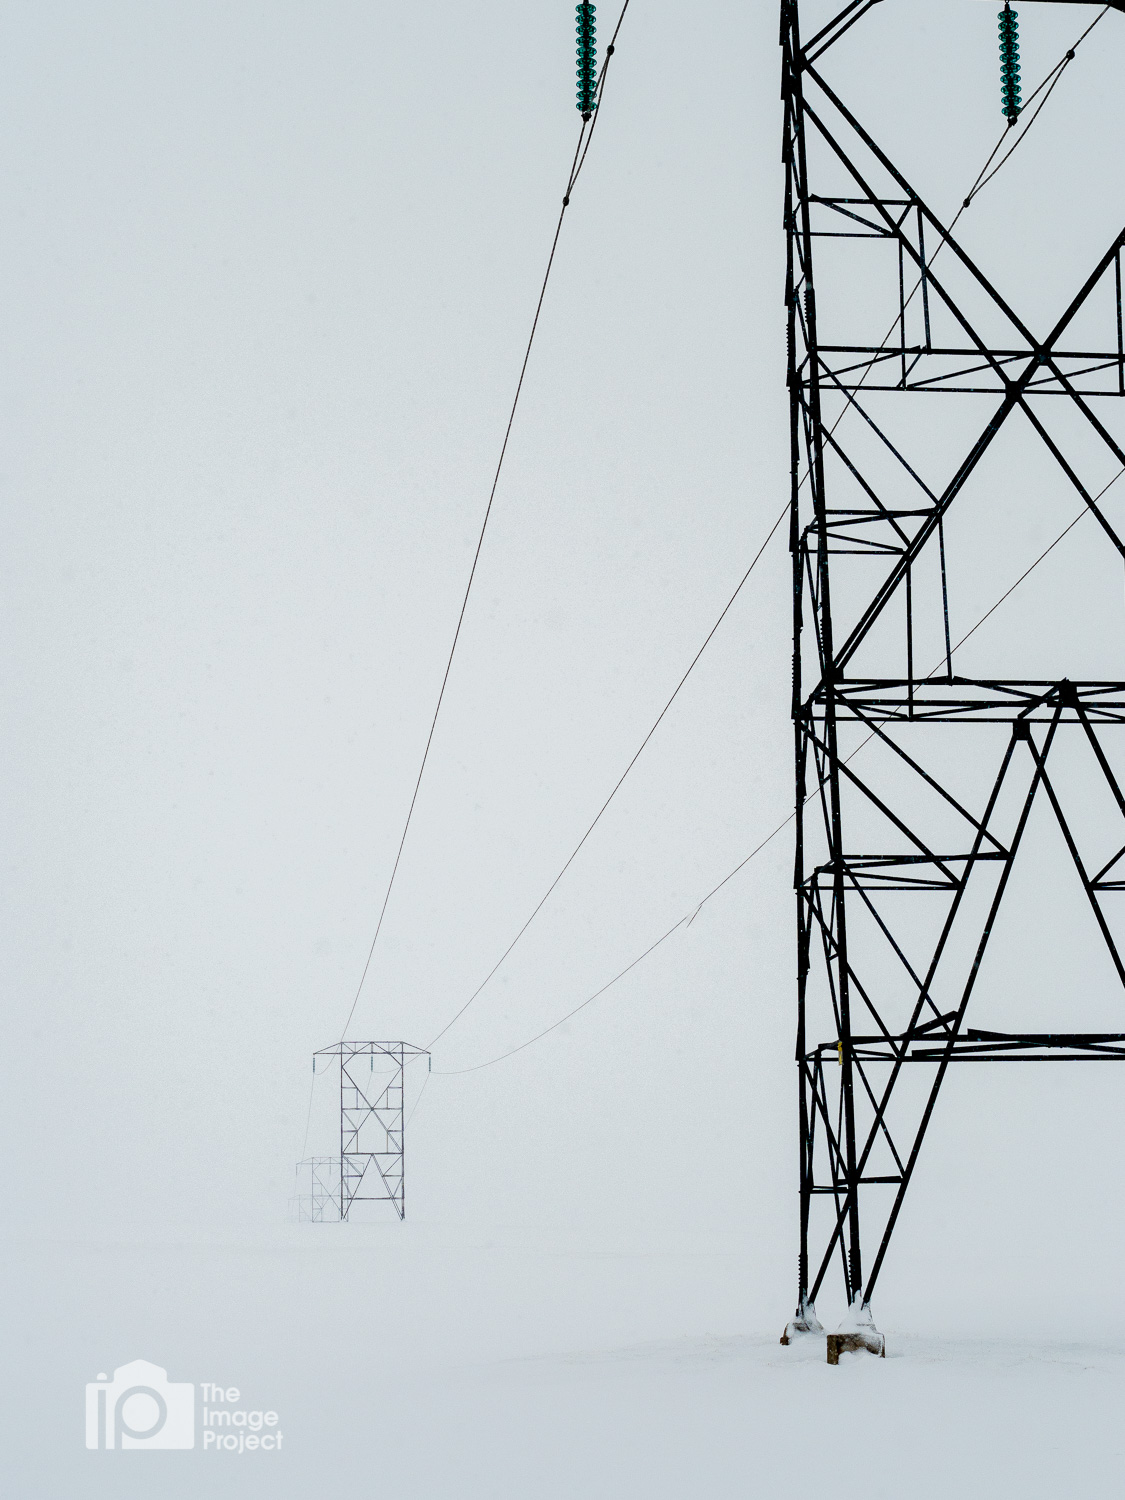 pylons during snowstorm whiteout north iceland by nathan barry the image project winter